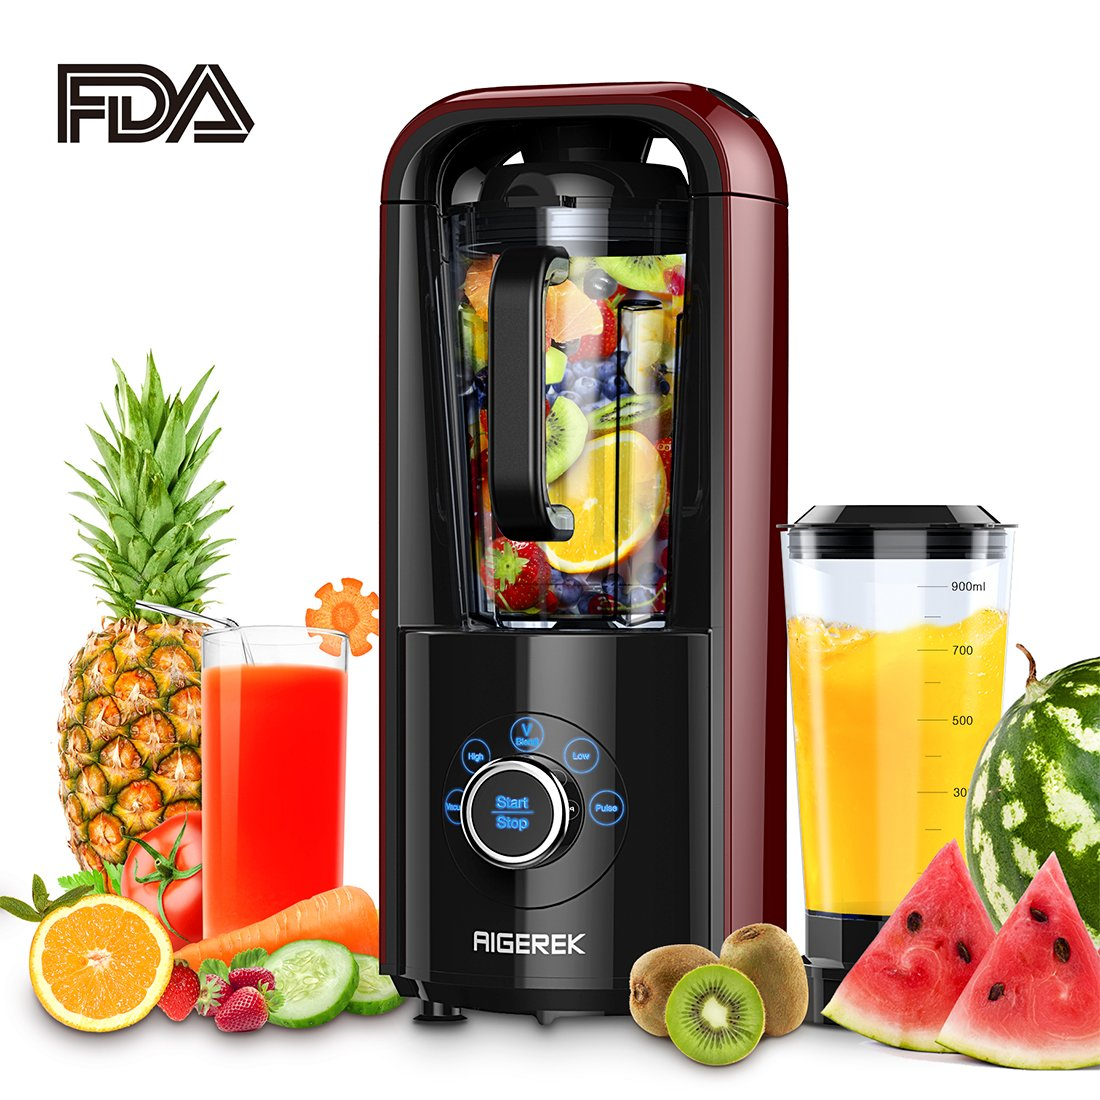 Smoothie Blender, Aigerek Professional High-Speed Drink Mixer and Ice Crusher, Electric Digital Self-Clean Blender for Ice Fruits Vegetables Smoothies and Shakes with Recipe Book, 1ps Vacuum Cup